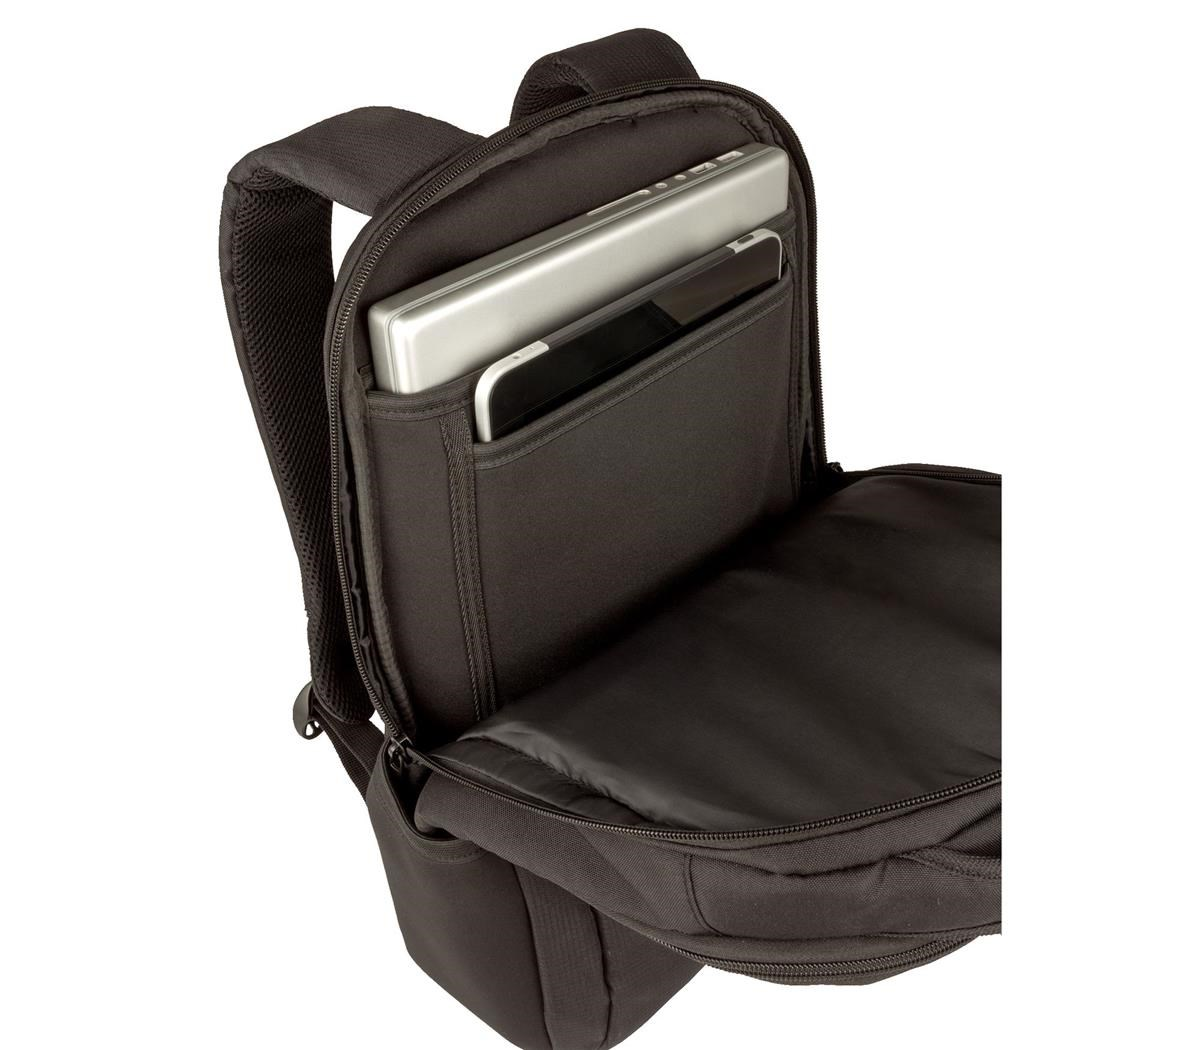 6a534179cccbe Wenger Fuse Polyester Backpack (Black) for 15.6 inch Laptops ...